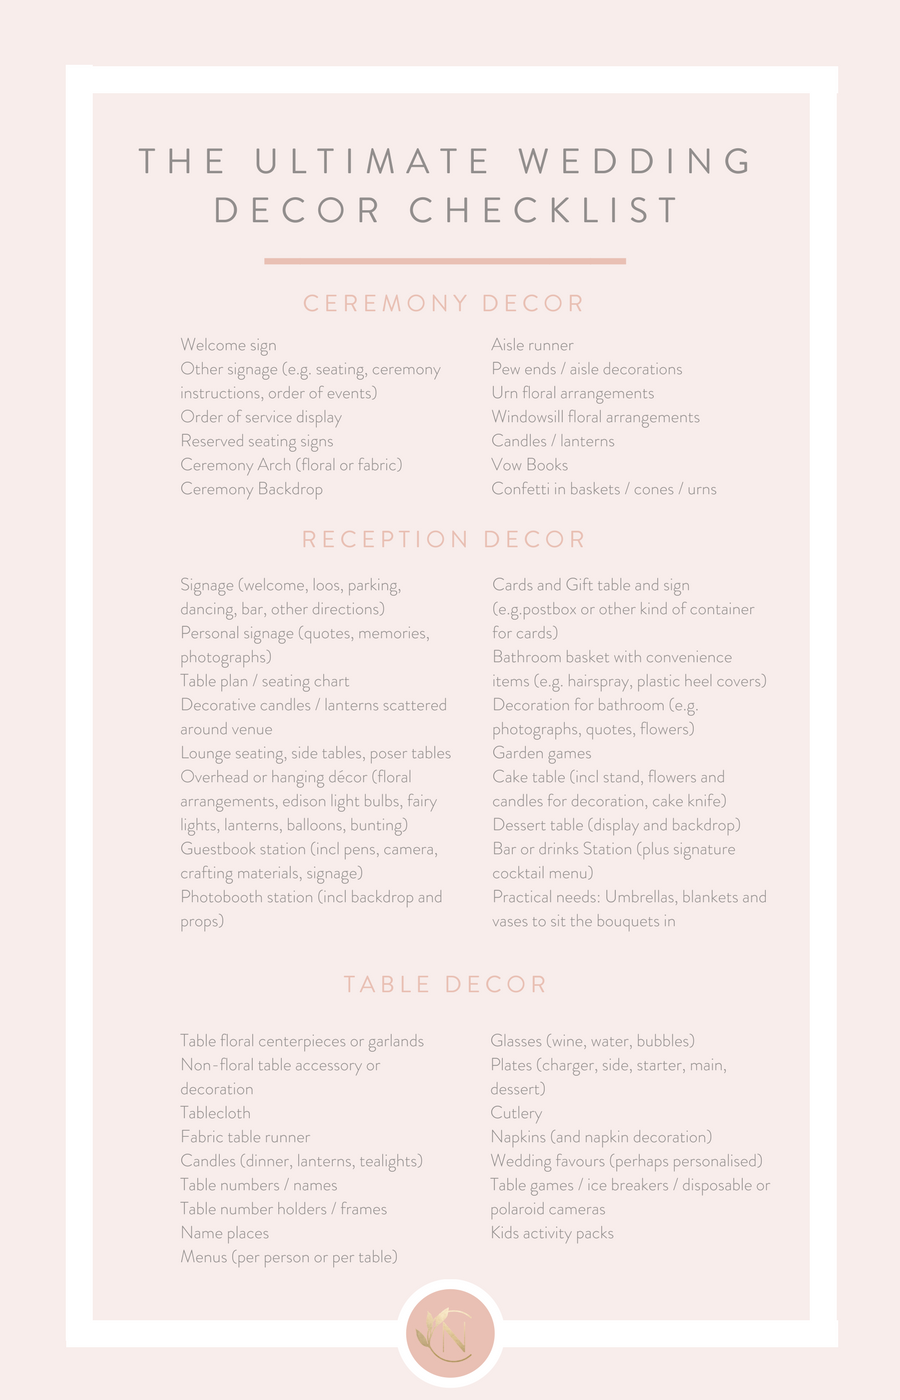 The ultimate wedding decor checklist leaving no stone unturned decor items for your day then please get in touch for a chat i would love to talk through your plans and help to create the wedding of your dreams junglespirit Gallery